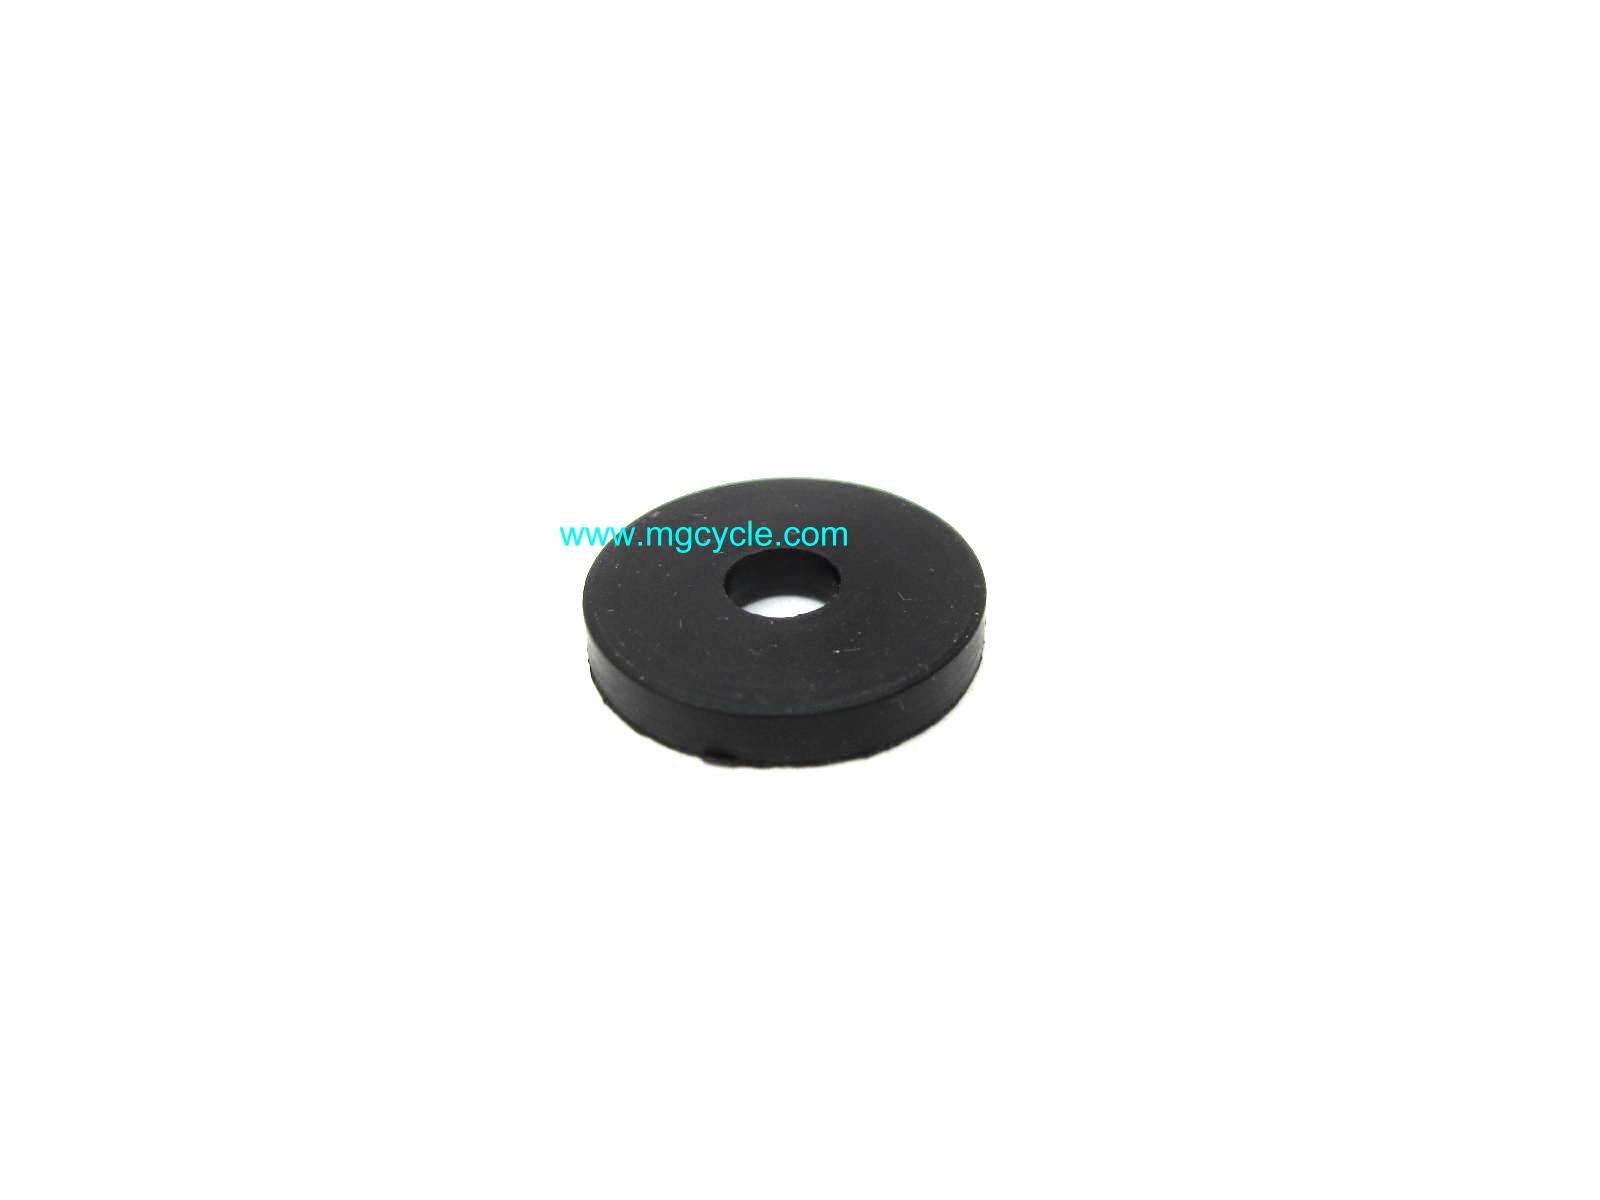 Rubber washer for rubber mounting, 6mm bolt